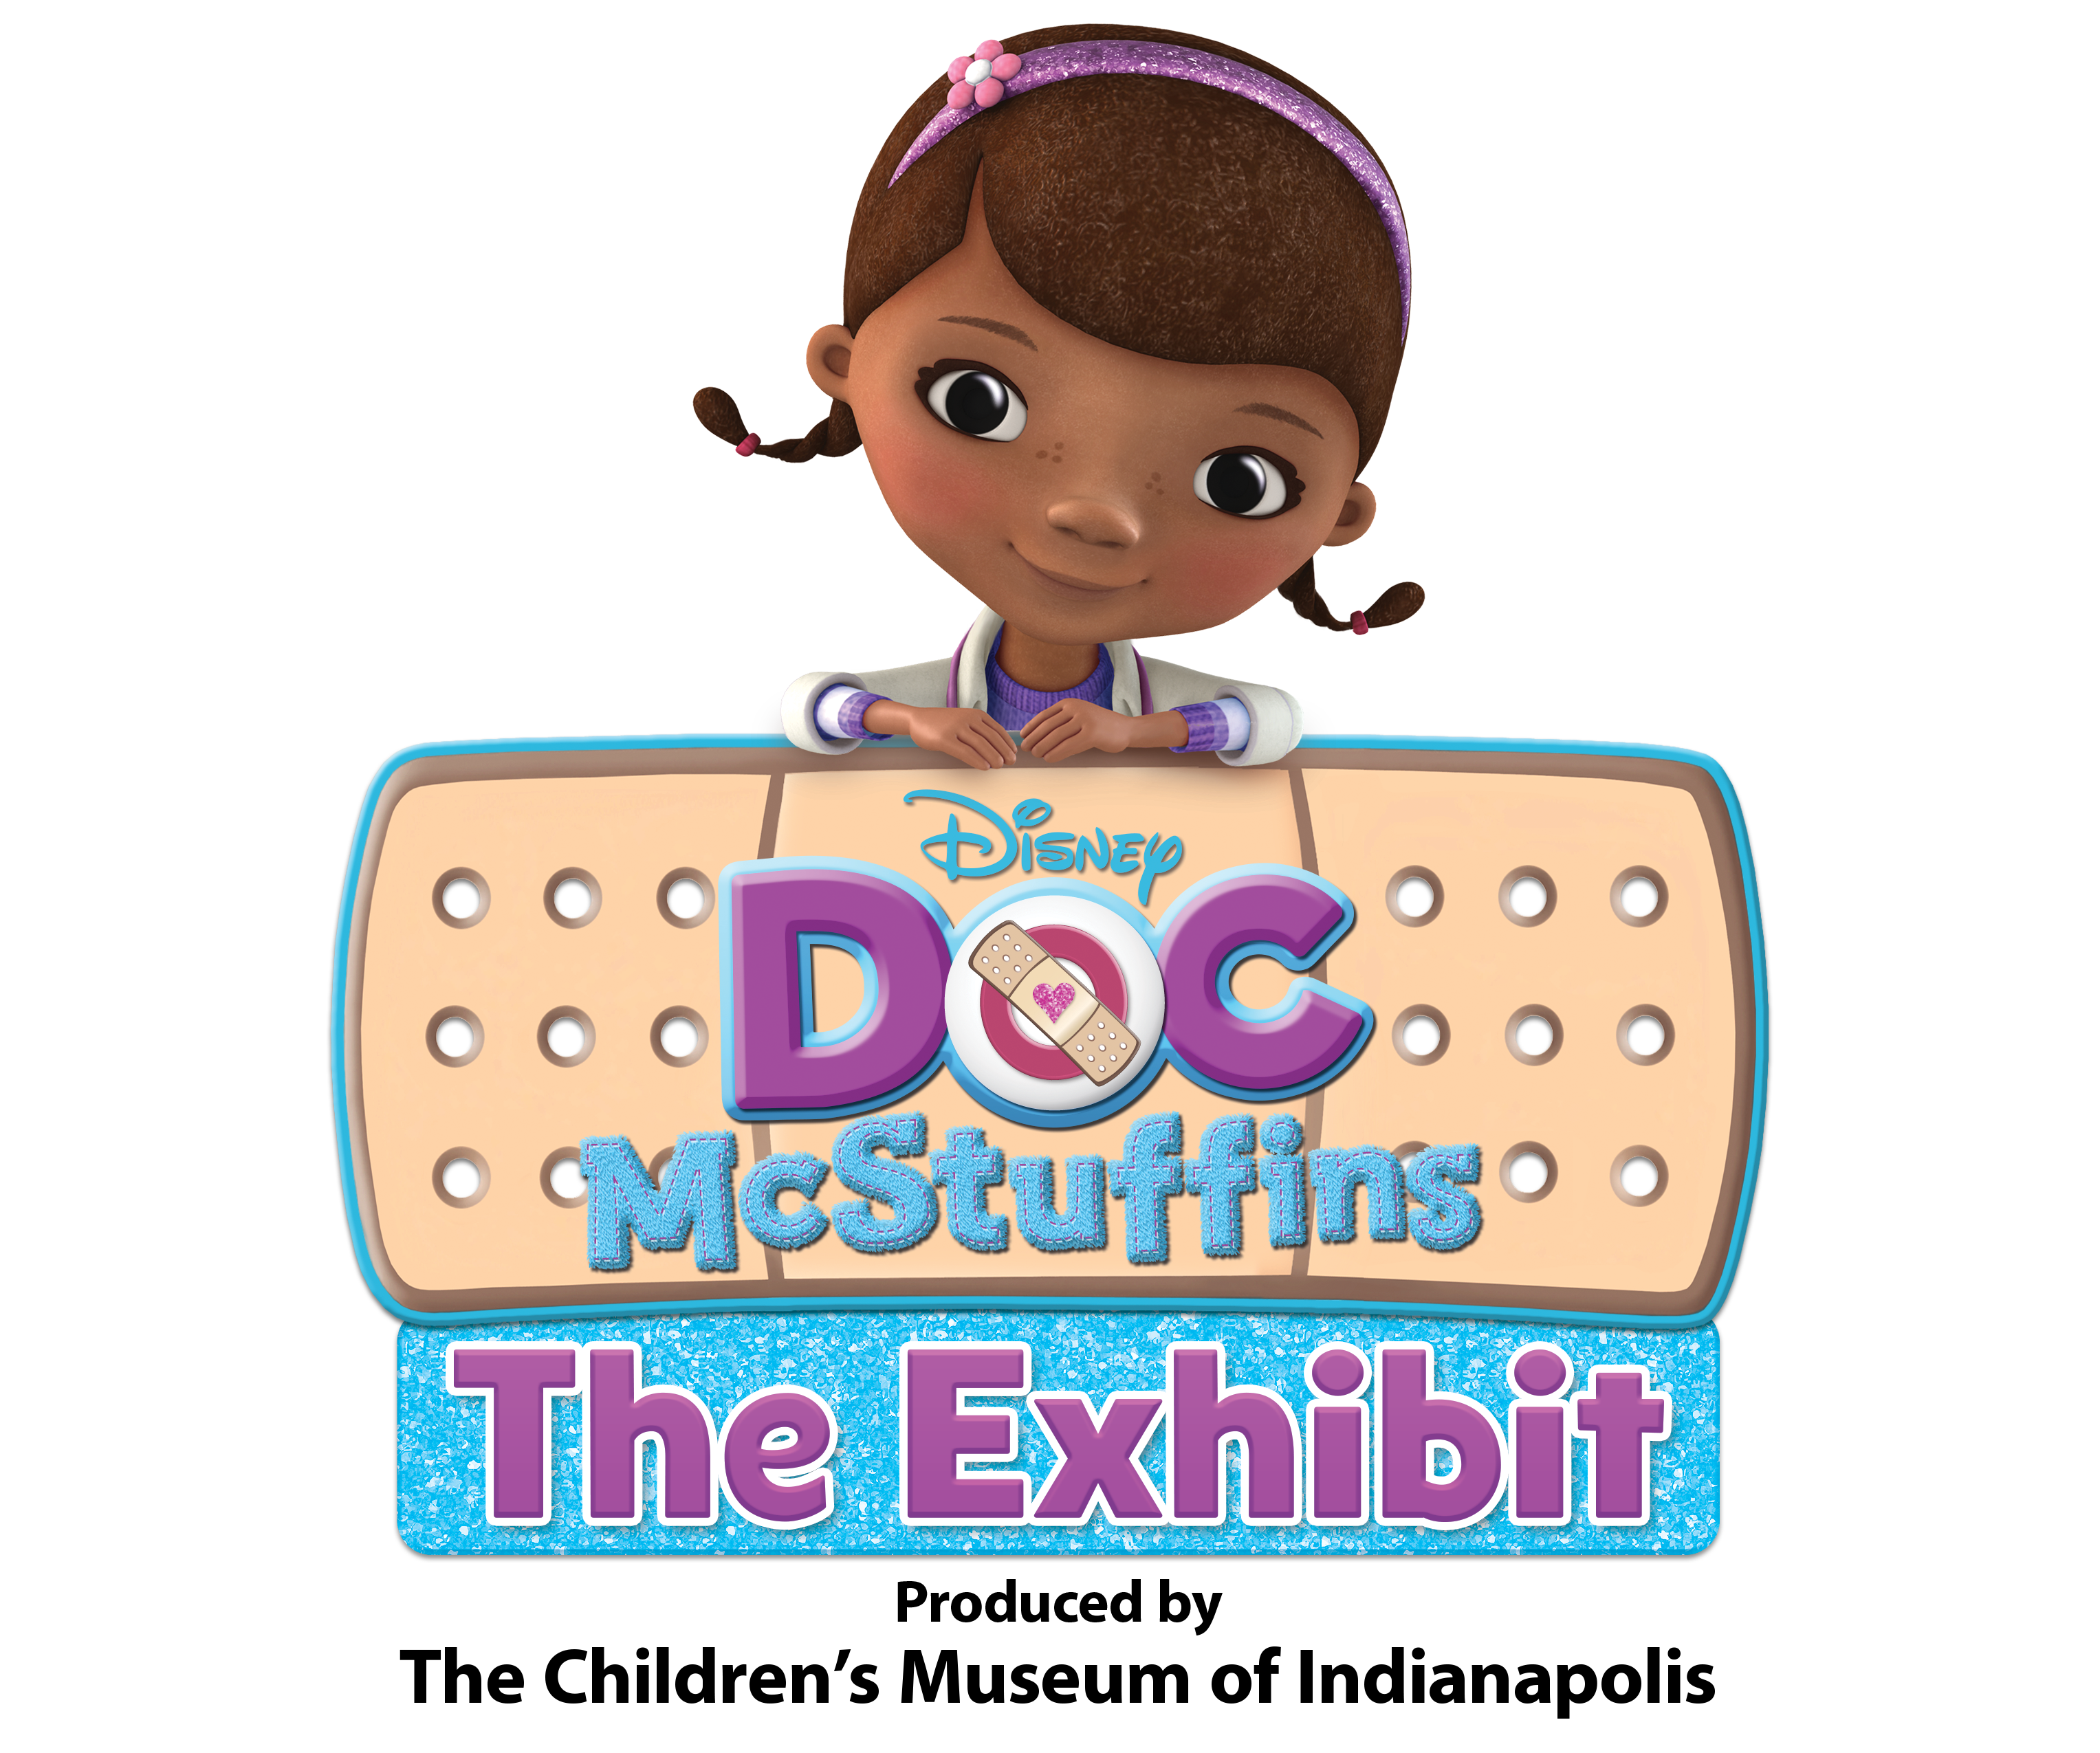 Doc McStuffins: The Exhibit.